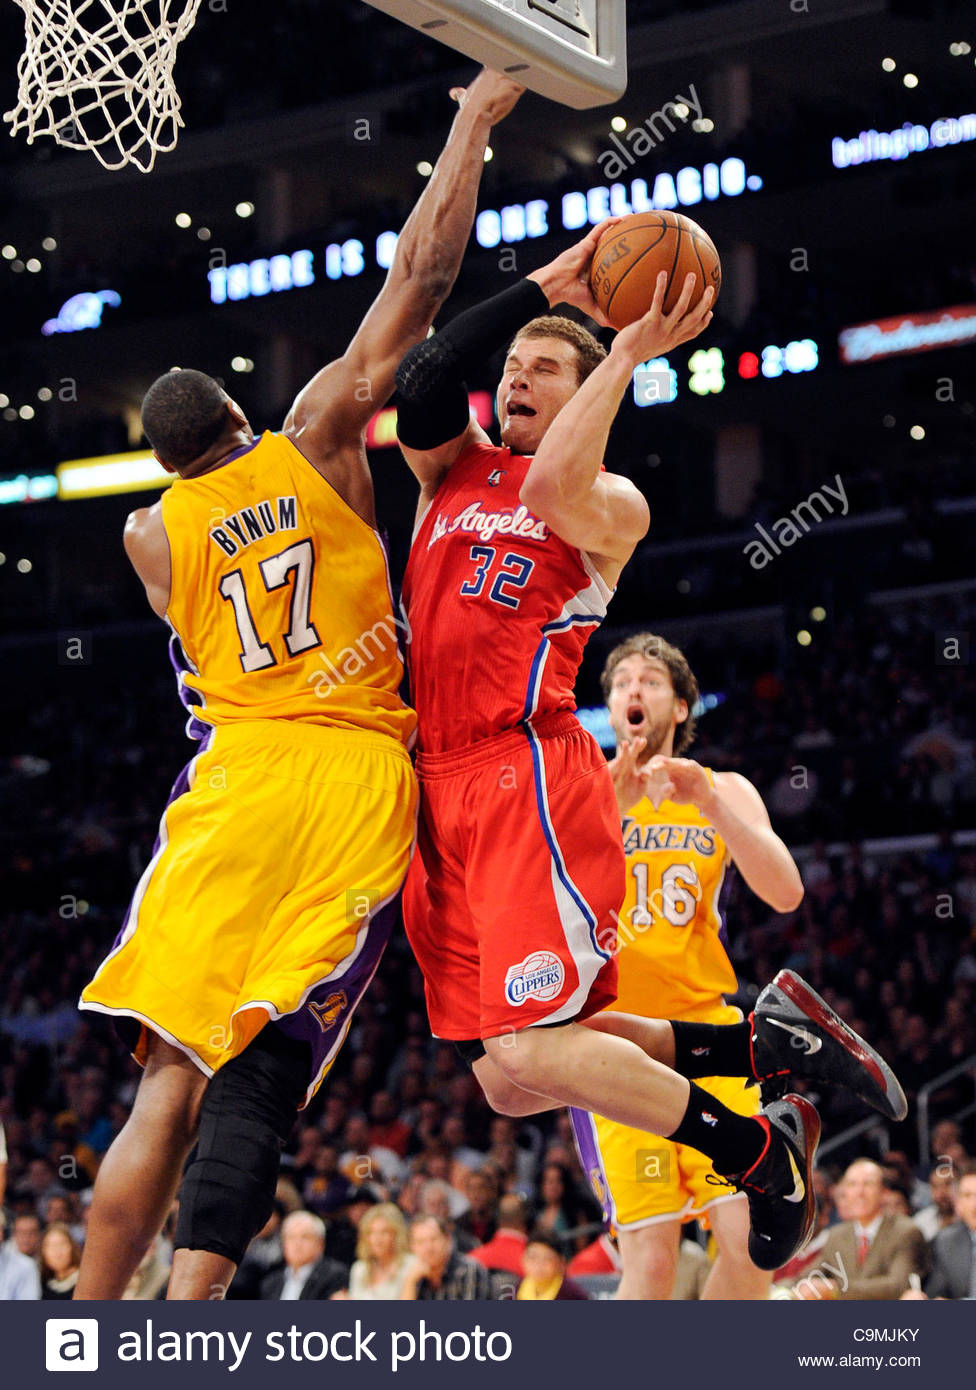 8cb5d5d8357 The Clippers Blake Griffin (32) goes up for the dunk as the Lakers'